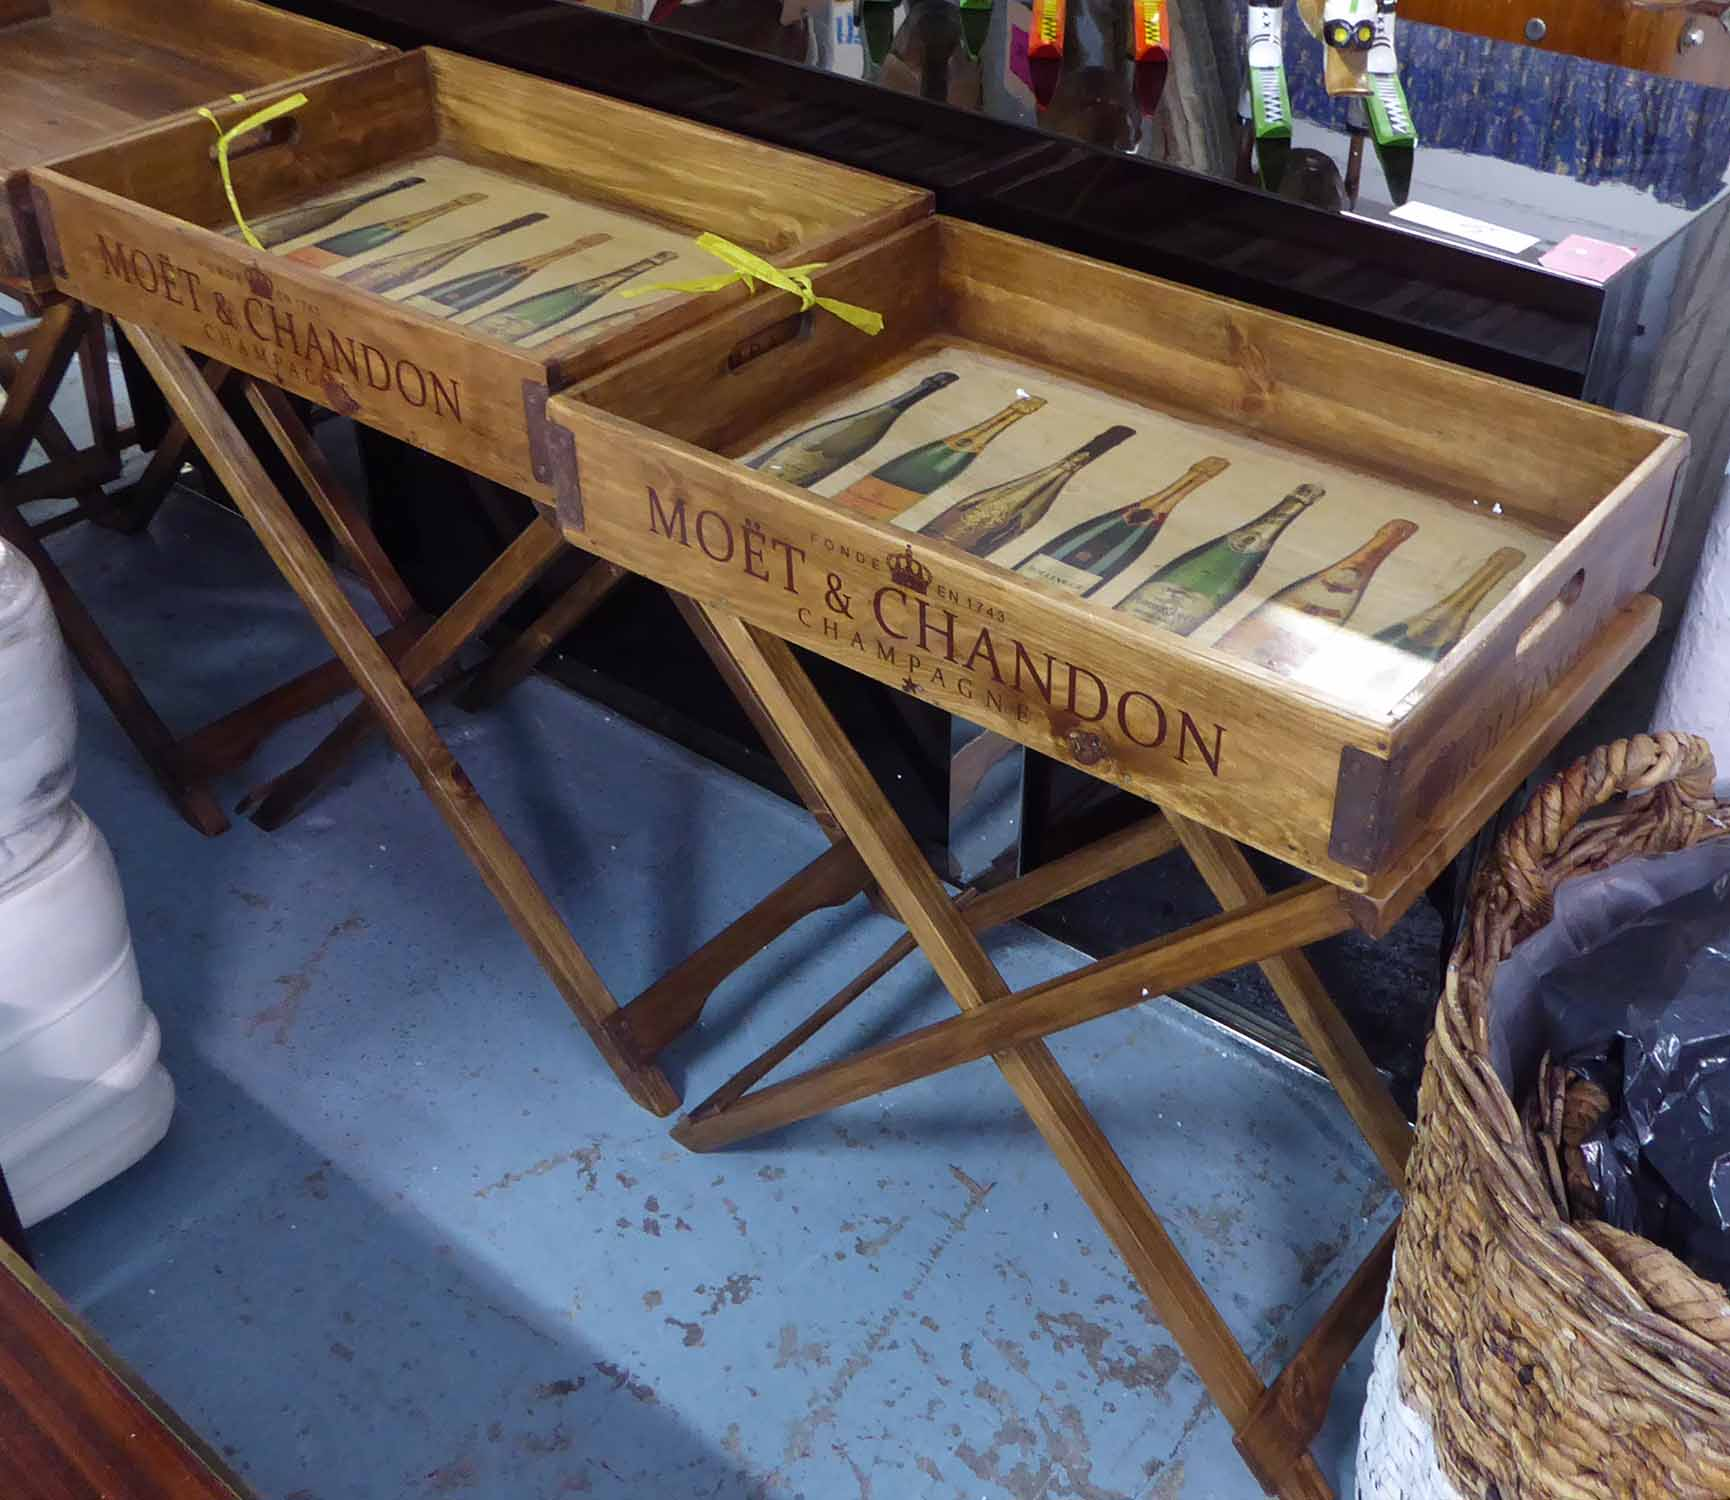 Lot 55 - DRINKS TRAYS, a pair, on stands, stamped with various champagne houses, 77cm H x 65cm W x 45cm D.